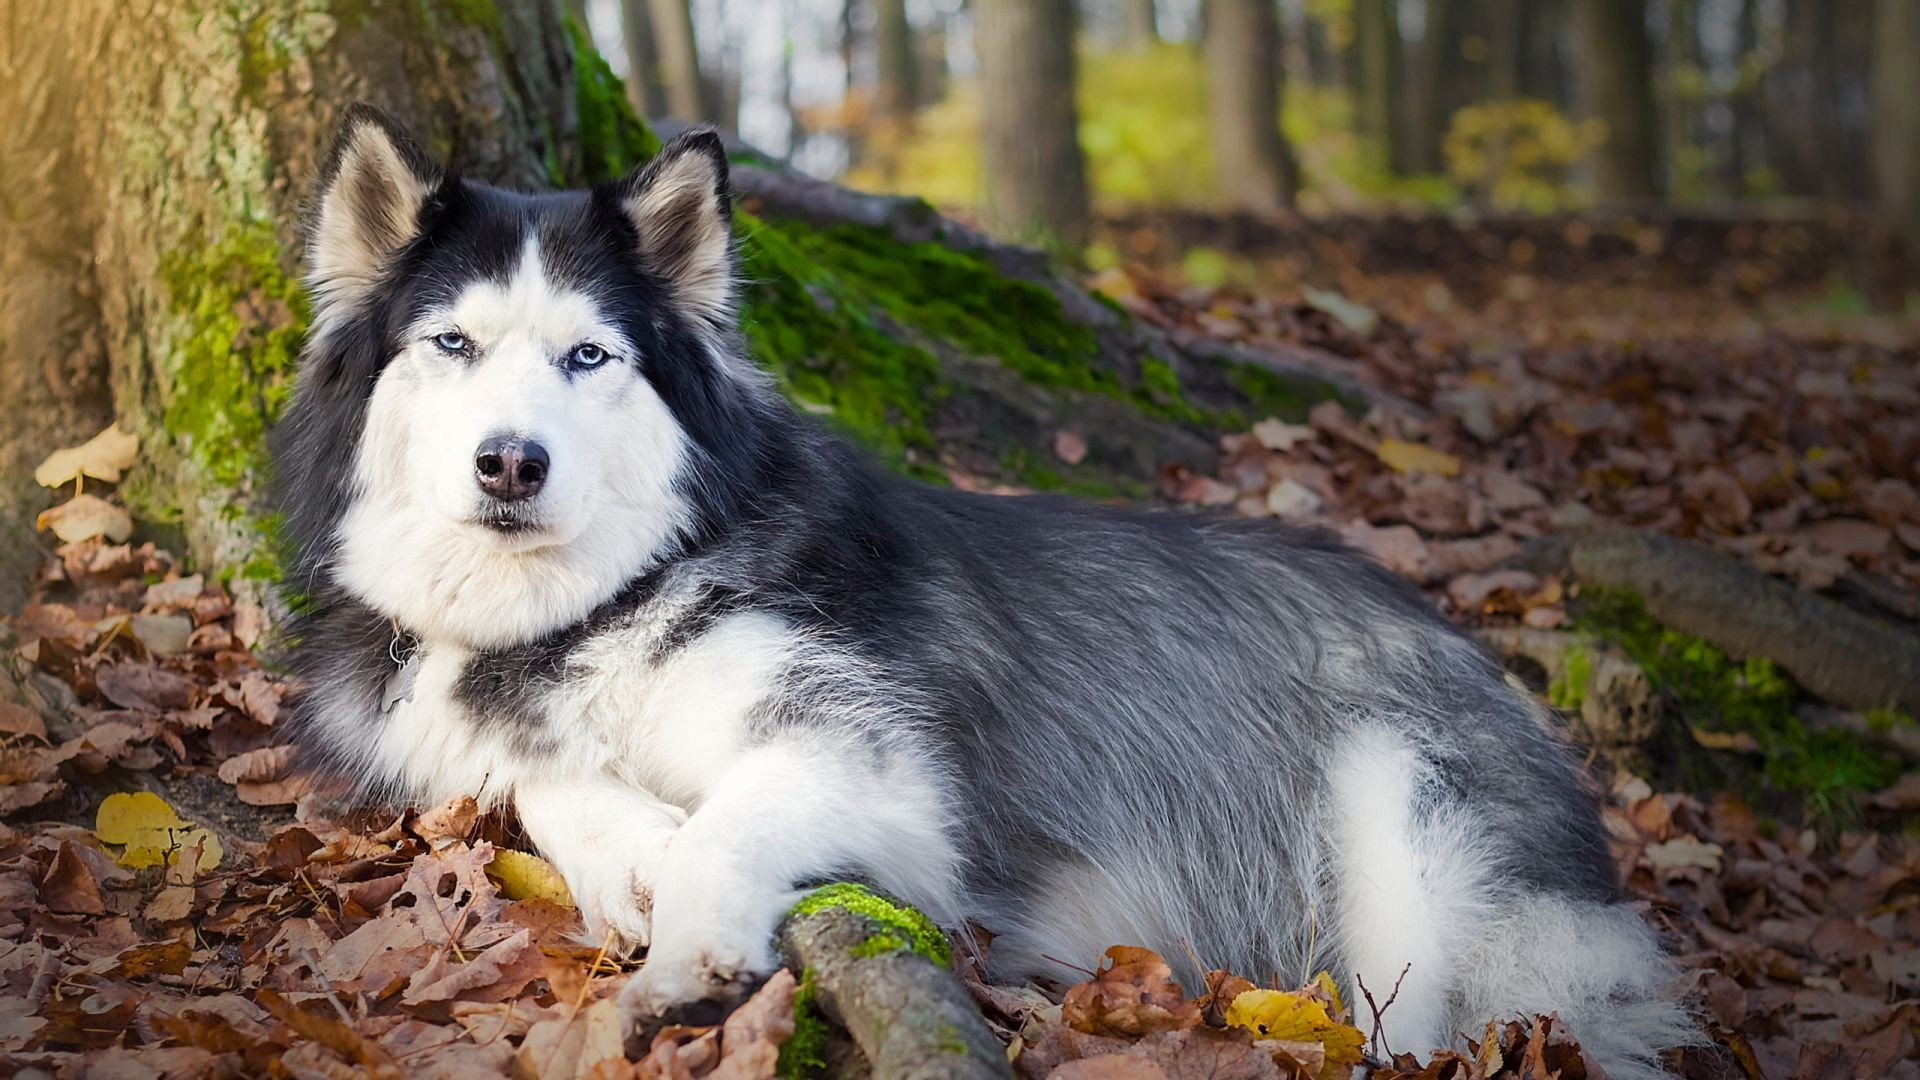 dogs dog mammal nature cute canine portrait outdoors animal fall wood pet wolf fur